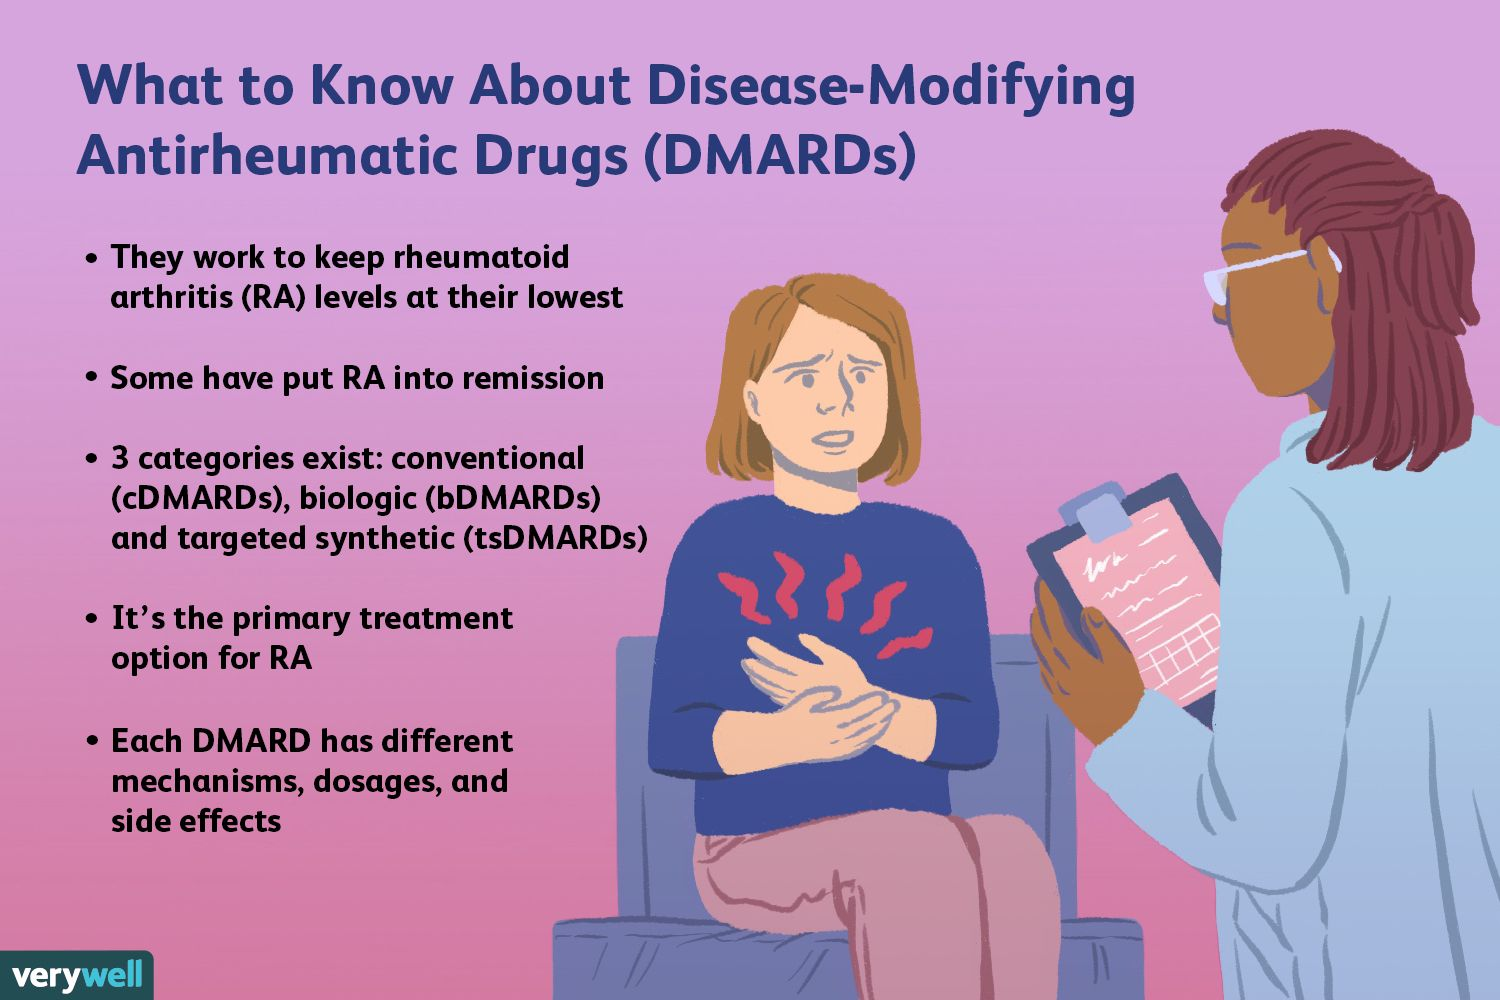 What to Know About Disease-Modifying Antirheumatic Drugs (DMARDS)